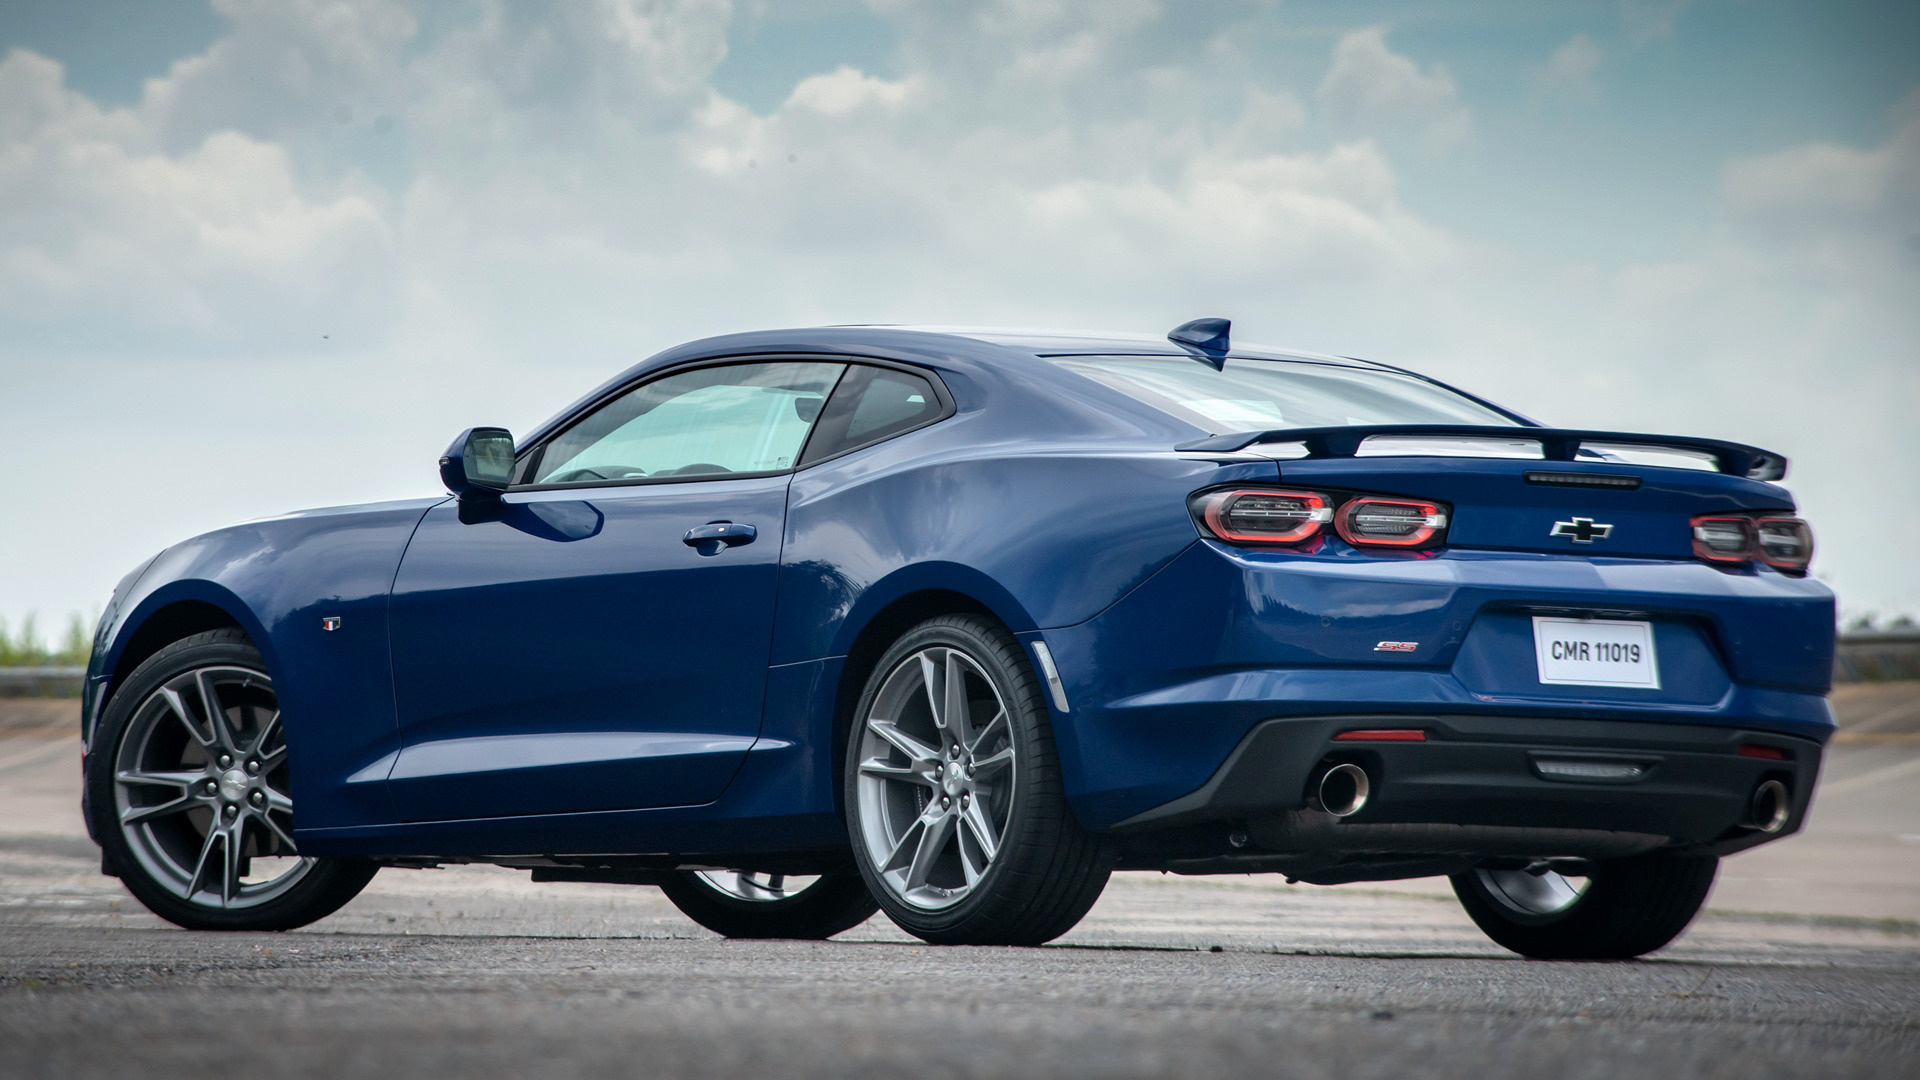 2019 Chevrolet Camaro SS (BR) - Wallpapers and HD Images ...